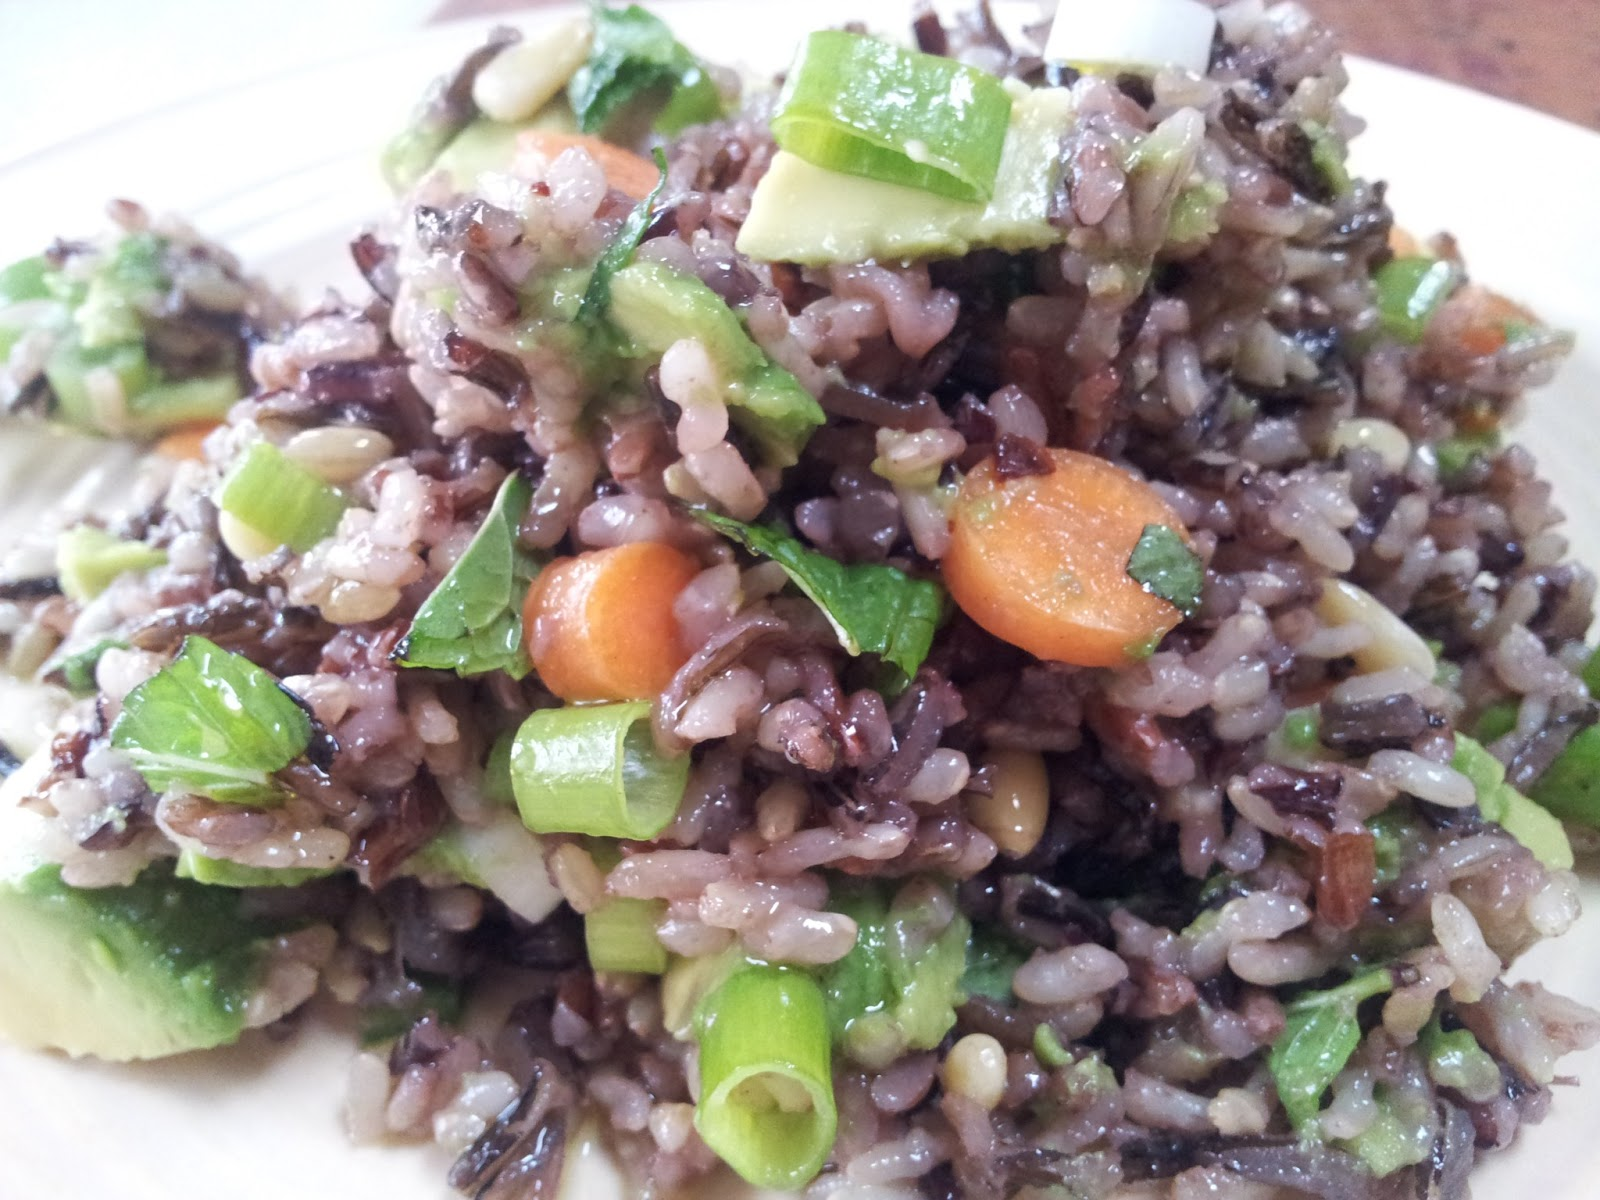 red or green?: wild rice salad with avocado, carrots & jalapeno